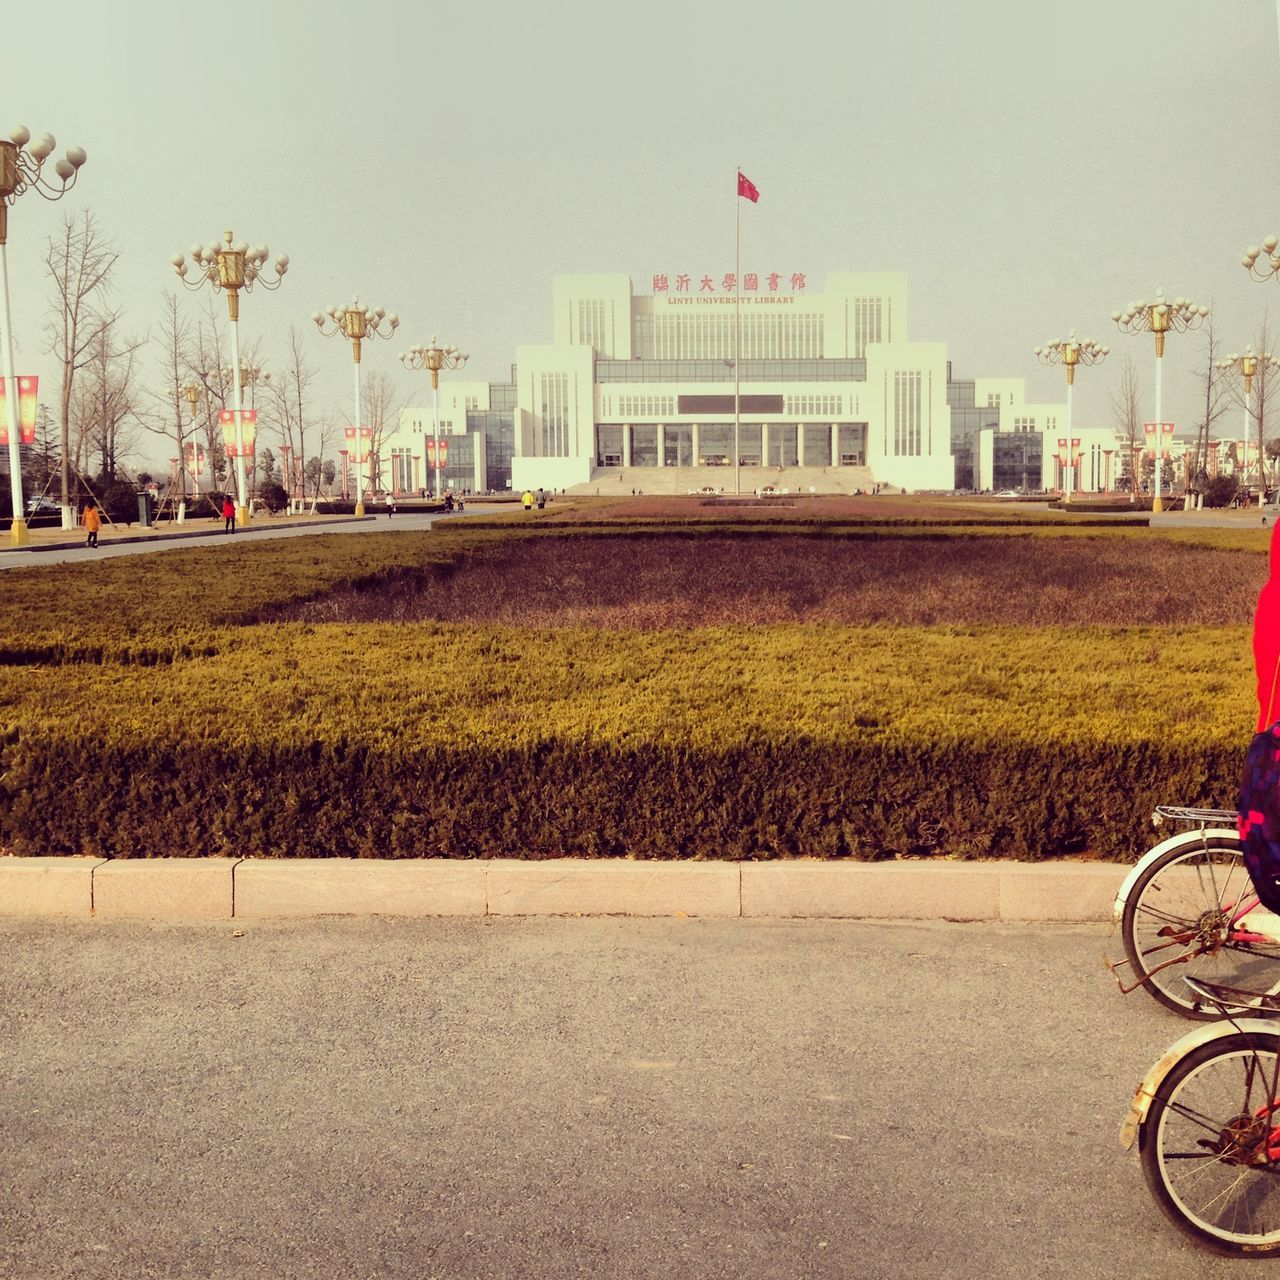 Architecture Bicycle Building Exterior Built Structure China City Day Going To School Government Land Vehicle Linyi No People Outdoors Riding Around Shandong Sky Transportation Tree University The Street Photographer - 2017 EyeEm Awards